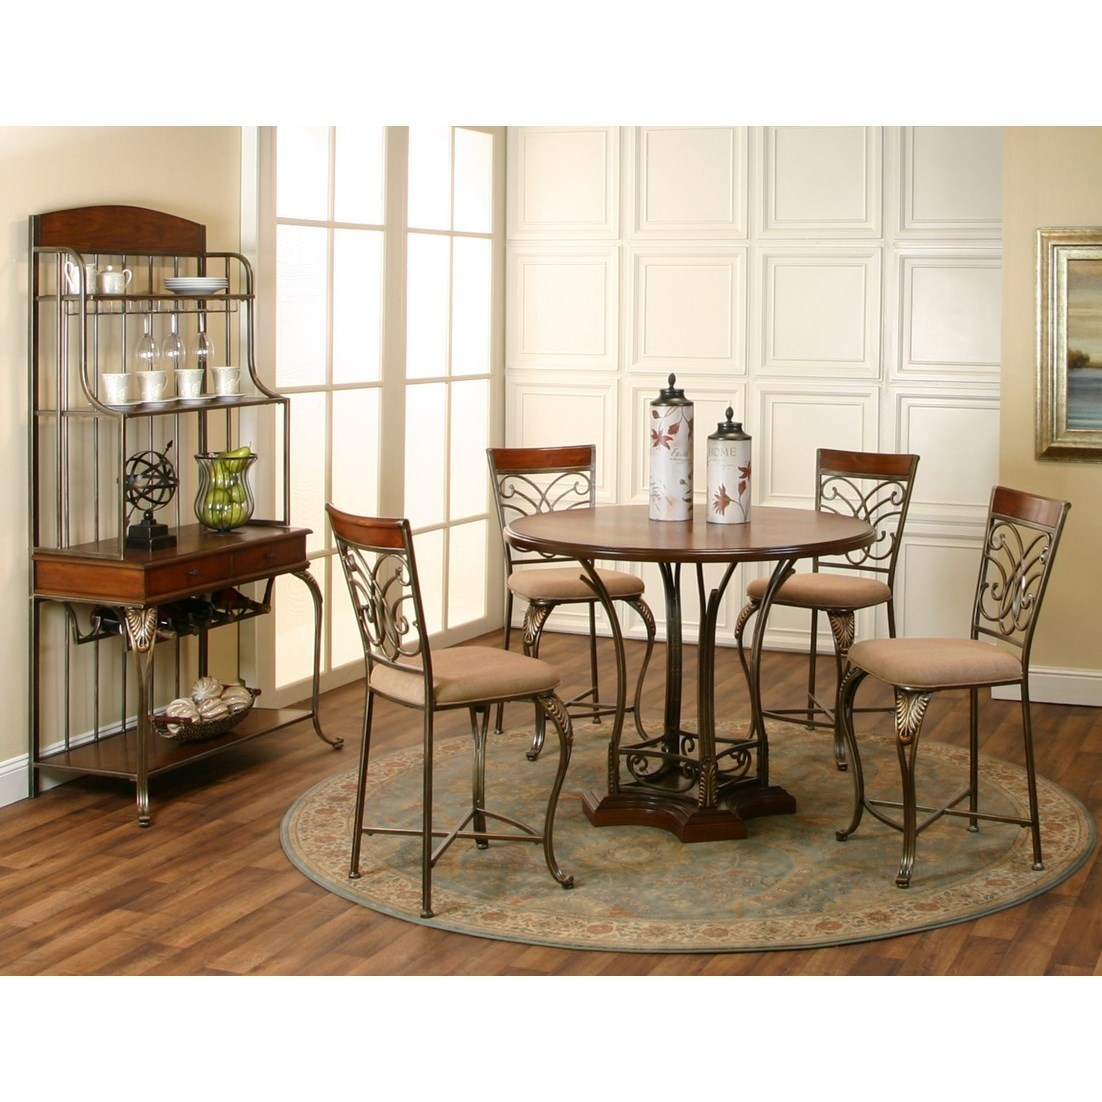 Cramco, Inc Harlow Counter Height Dining Room Group - Item Number: J9186 Dining Room Group 2